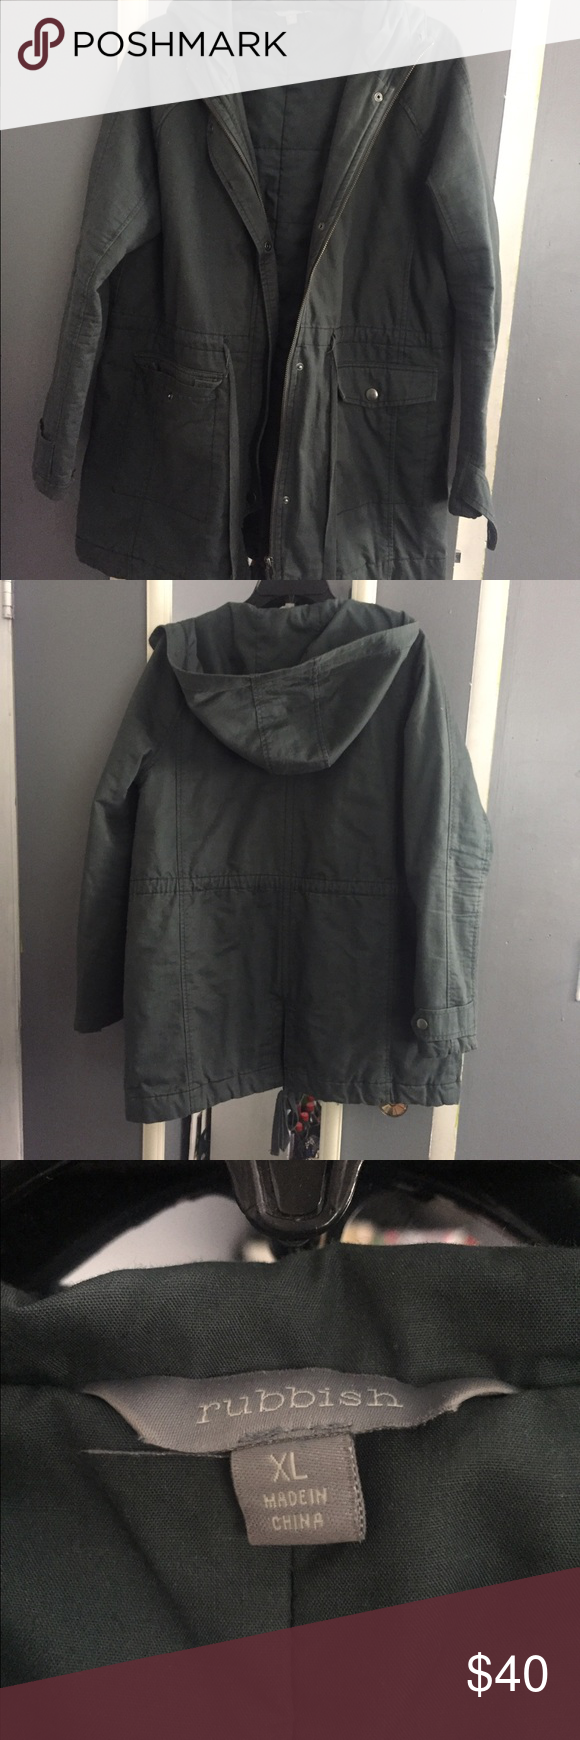 Army green Rubbish jacket Hooded, army green fall jacket Rubbish Jackets & Coats Utility Jackets